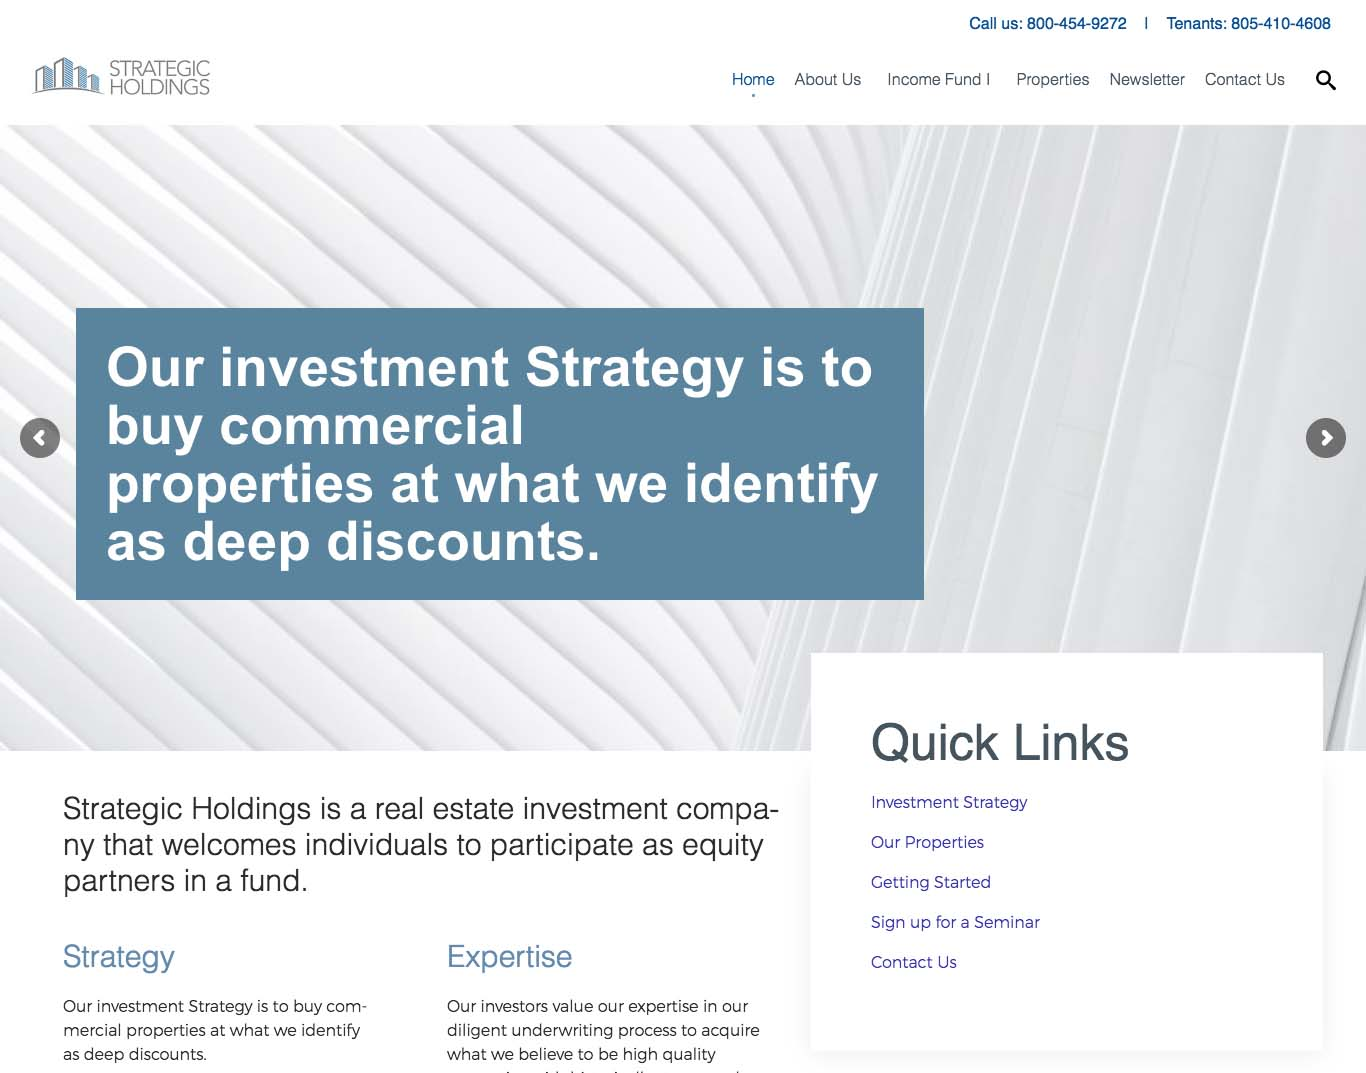 STRATEGICHOLDINGS.COM